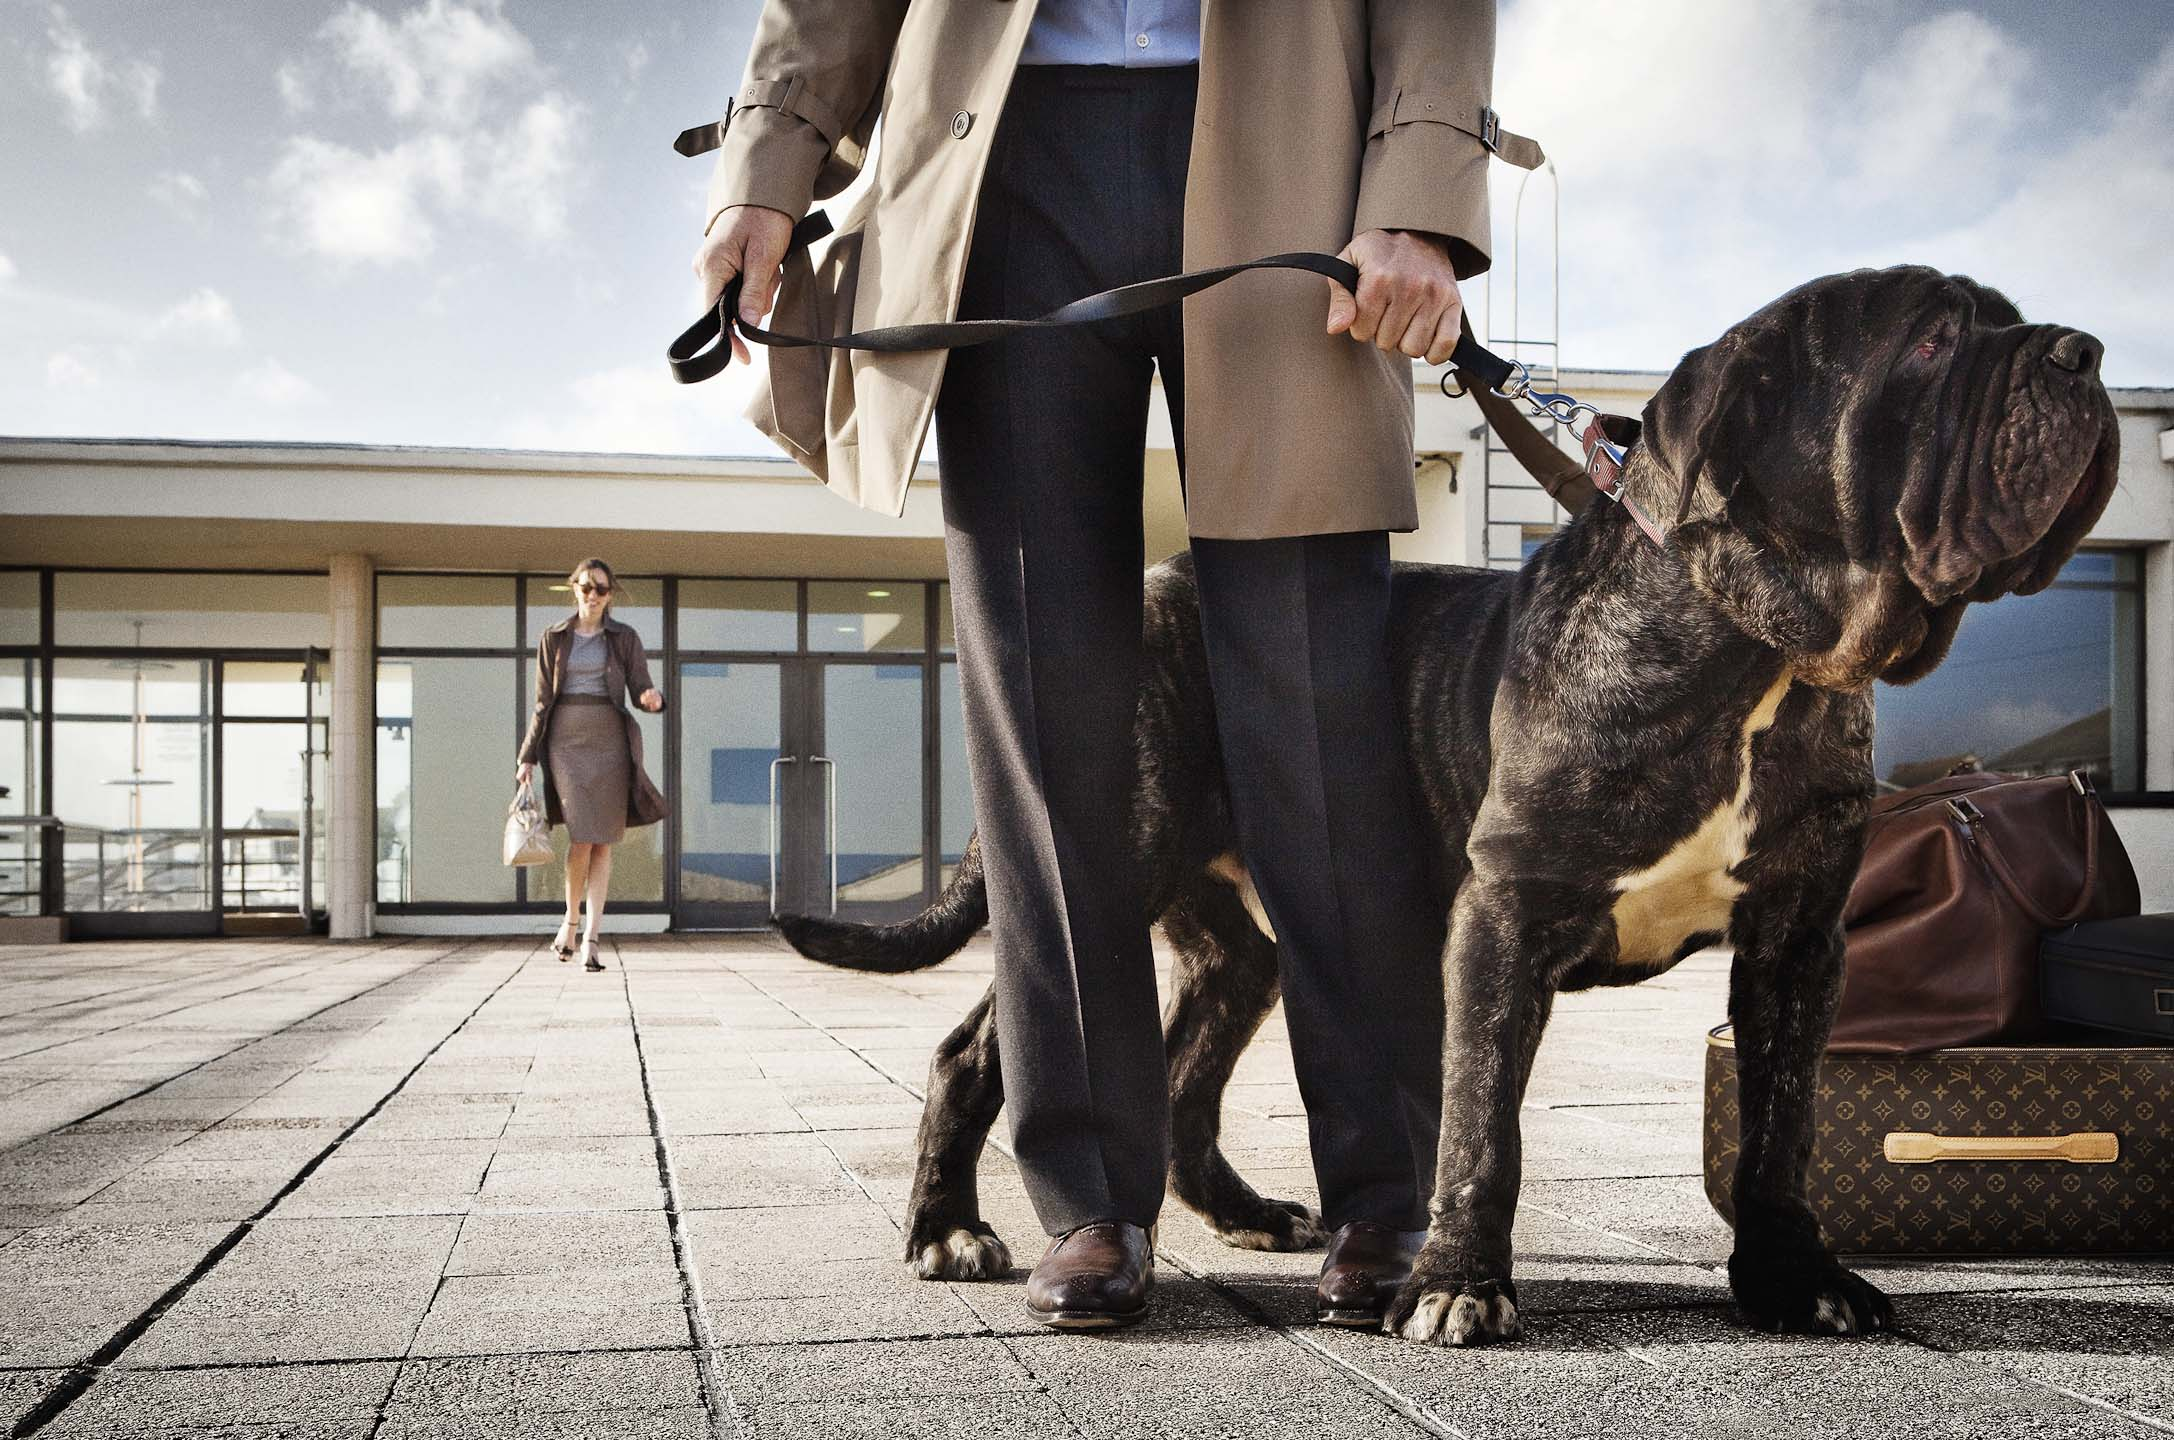 Alex Howe animal dog on leash with owner in wind by Luis Vuitton suitcase